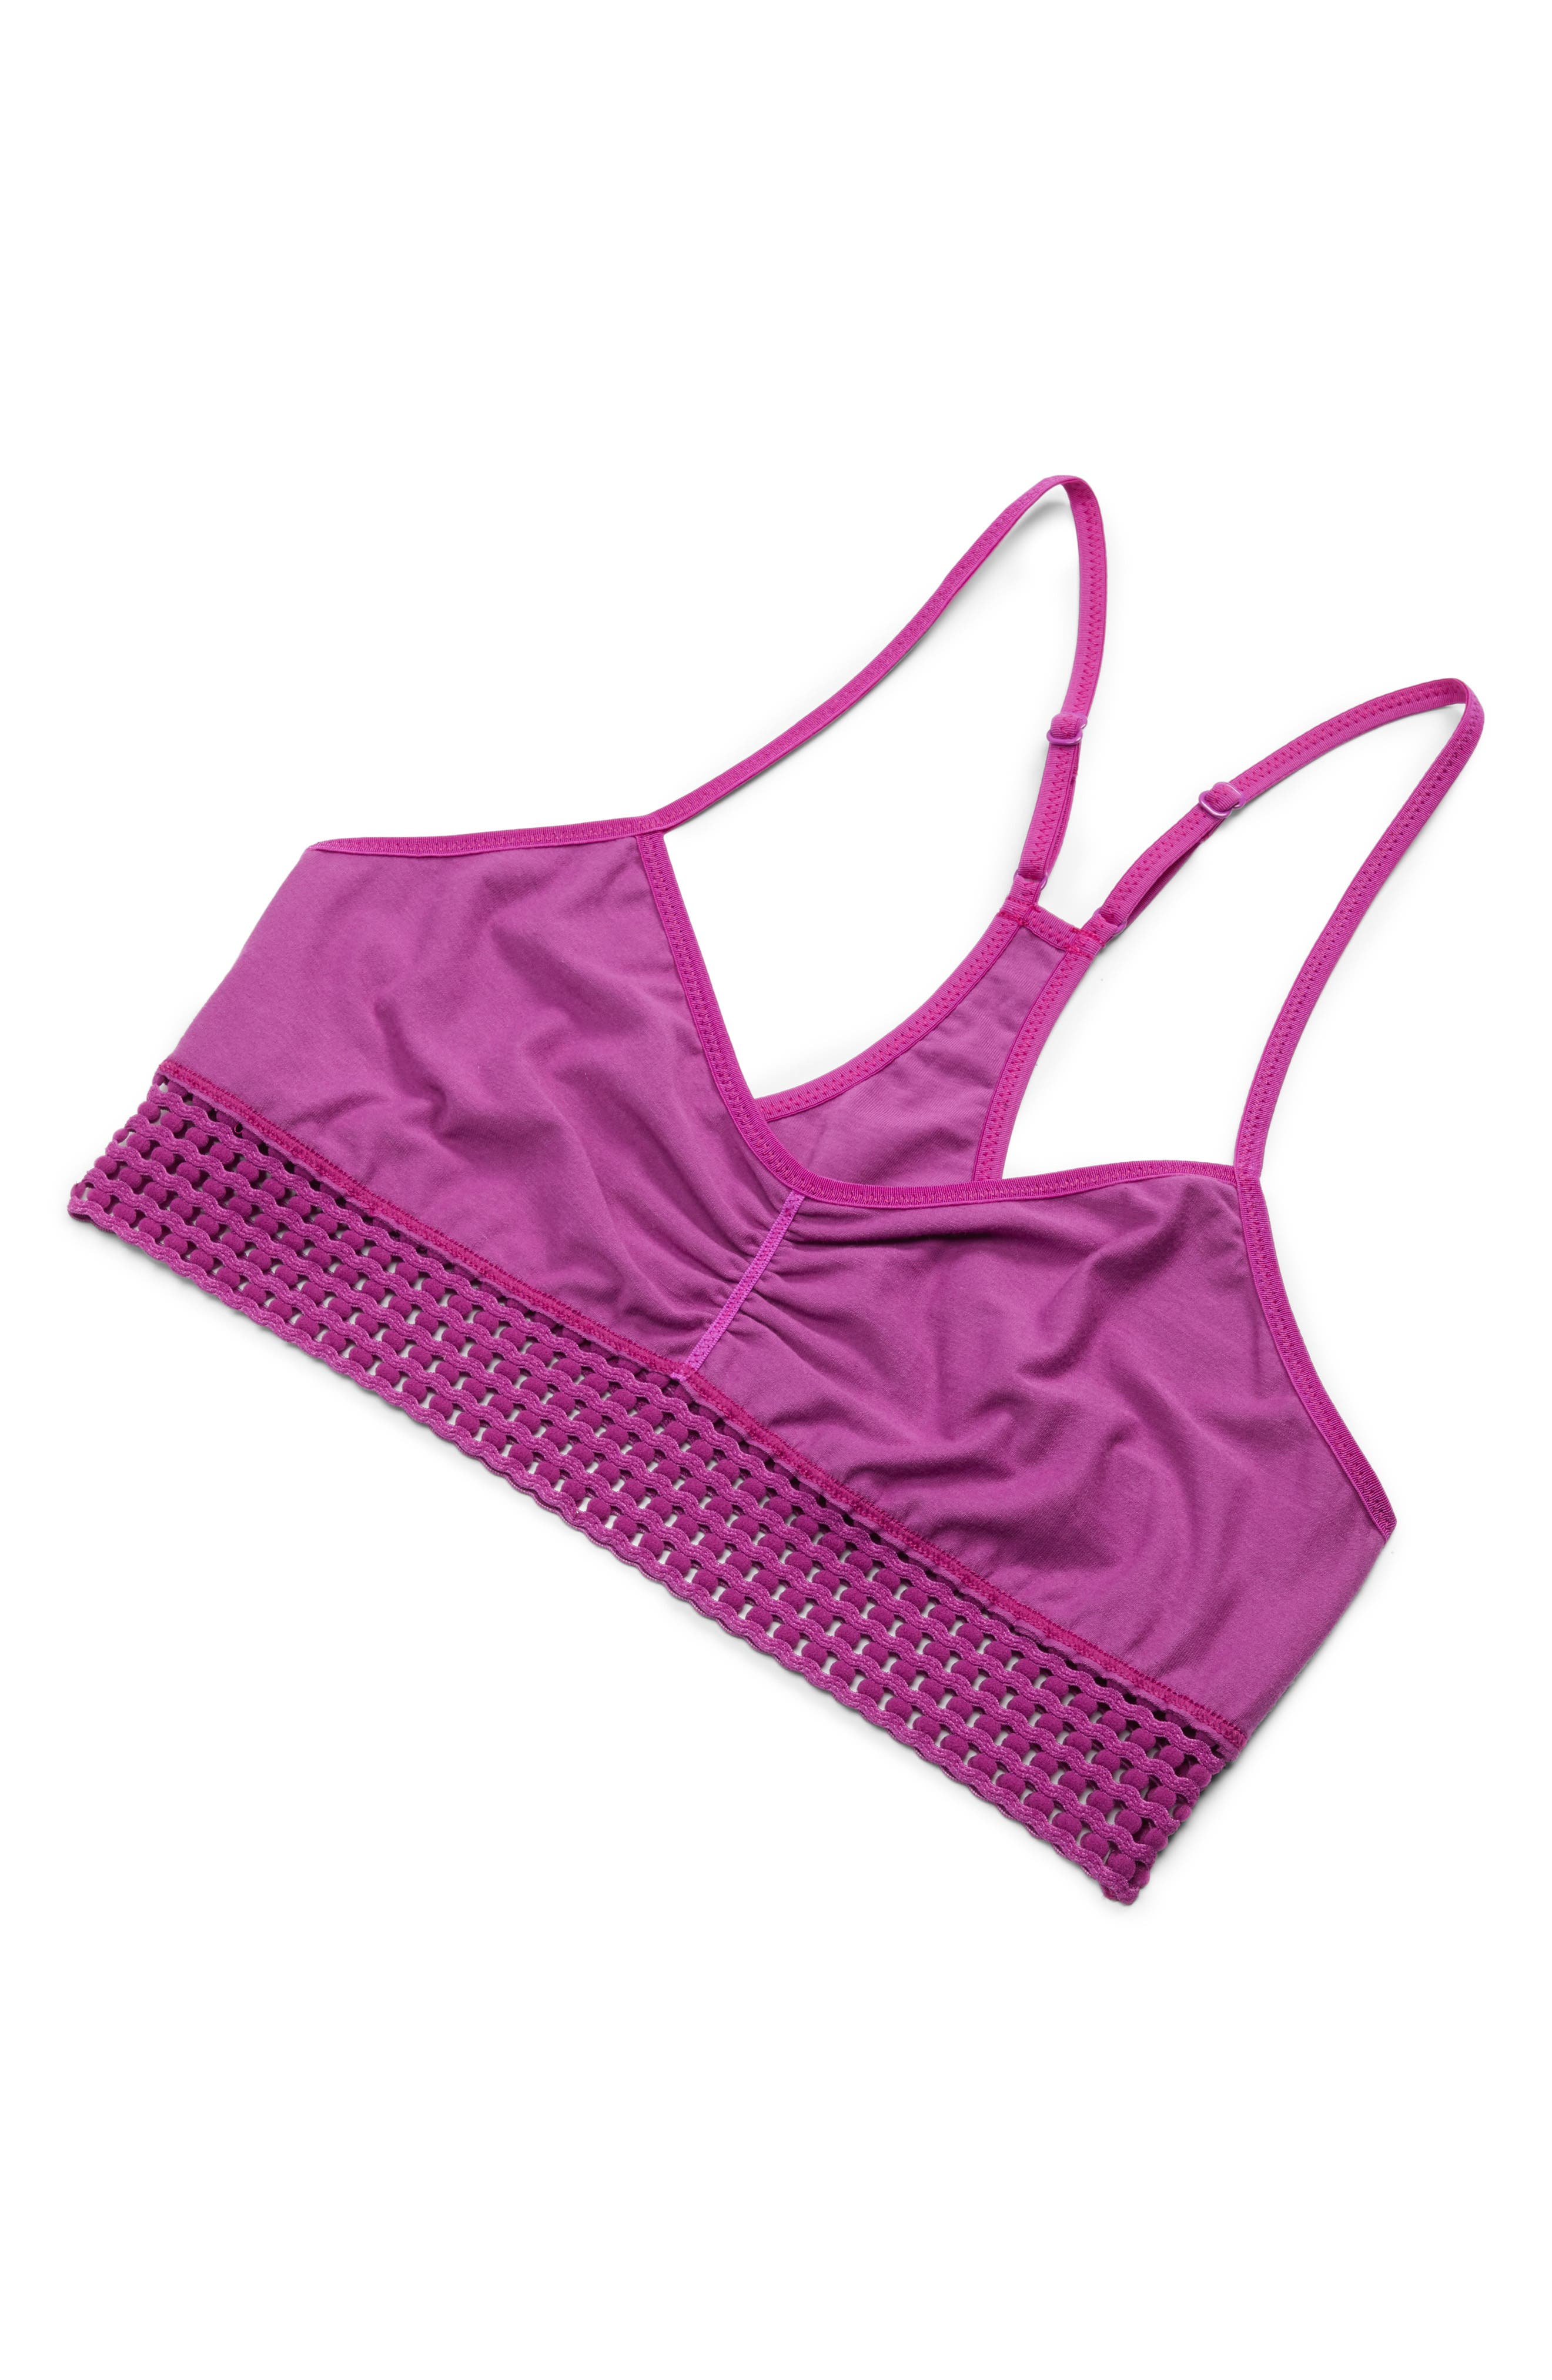 Intimately FP Hadley Racerback Bralette,                             Alternate thumbnail 5, color,                             Pink